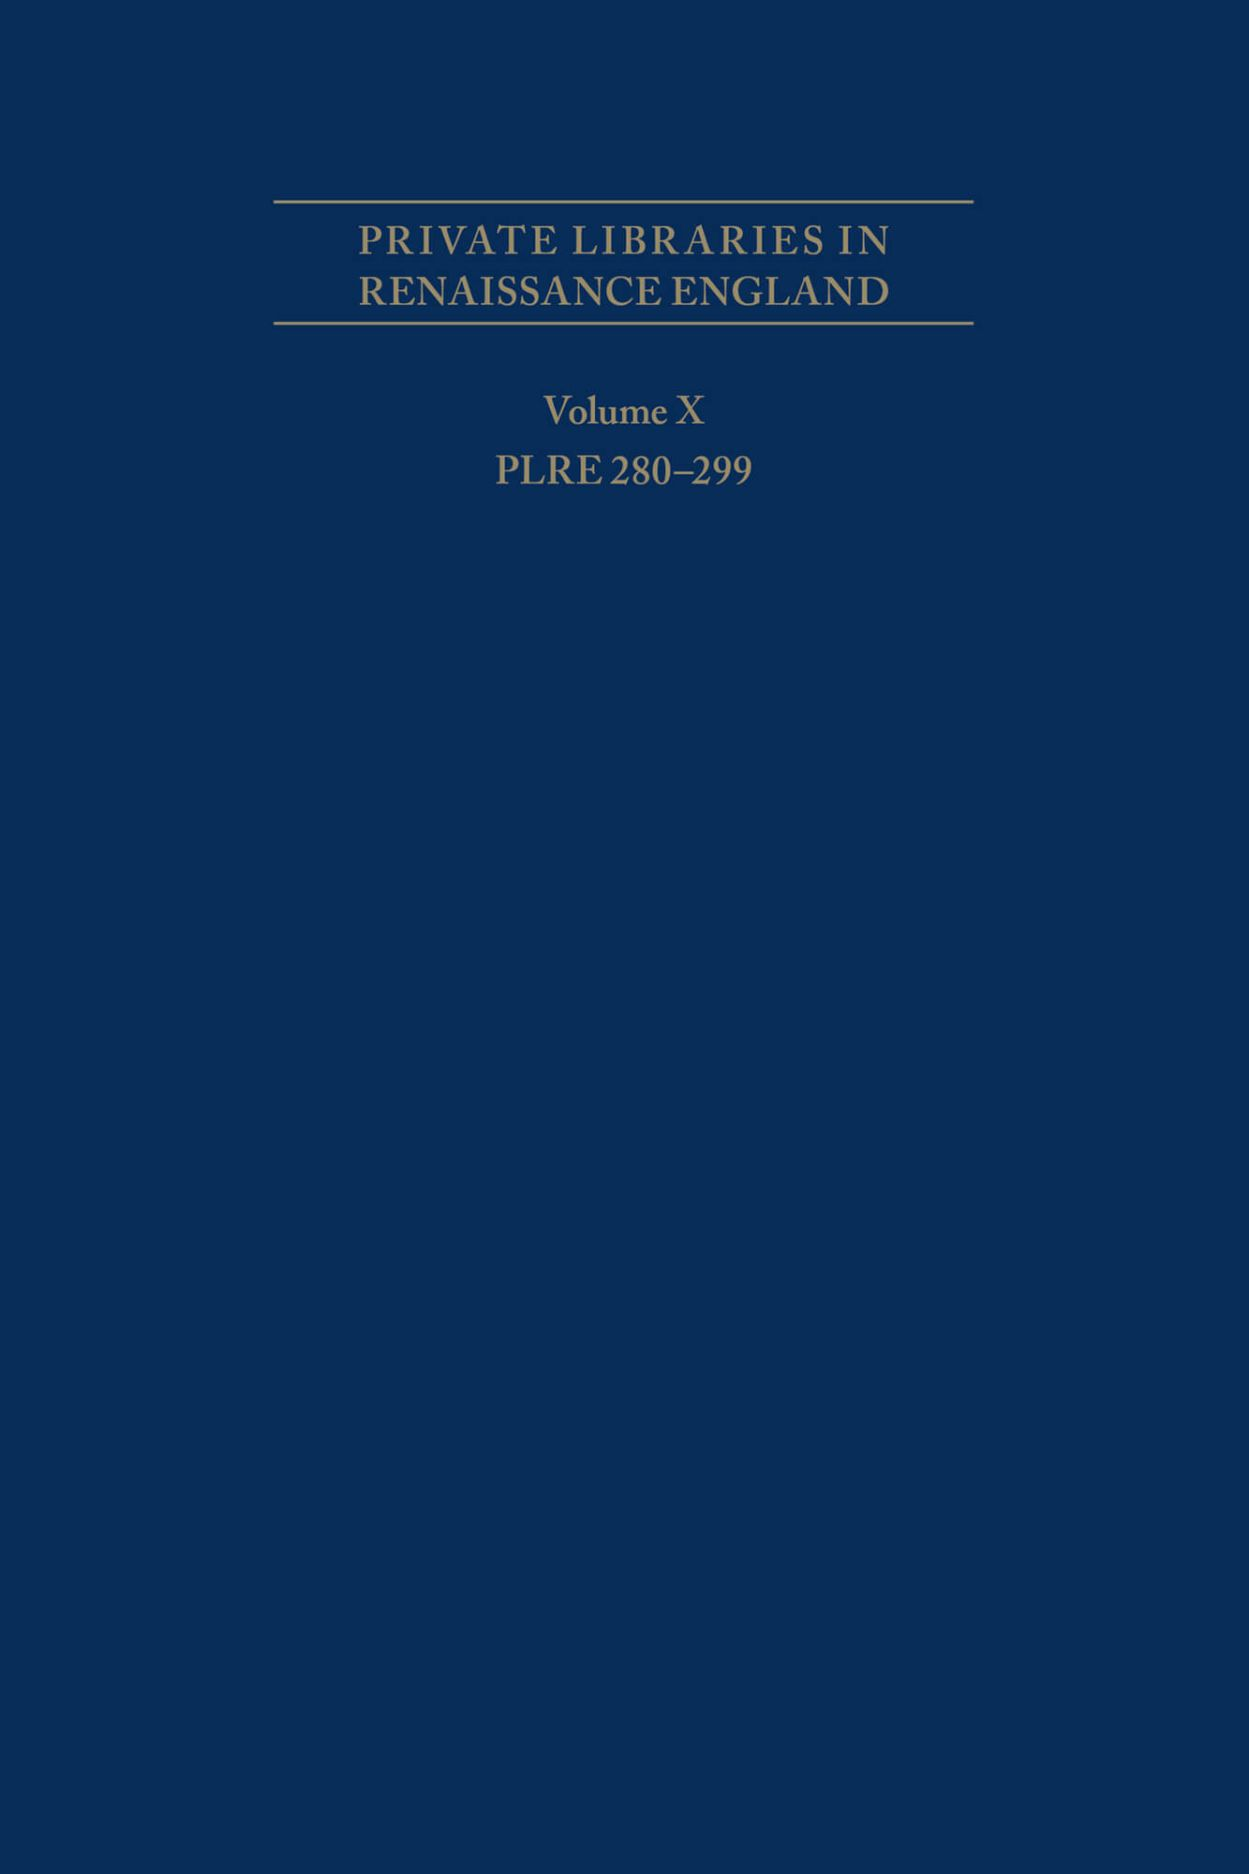 Private Libraries in Renaissance England: A Collection and